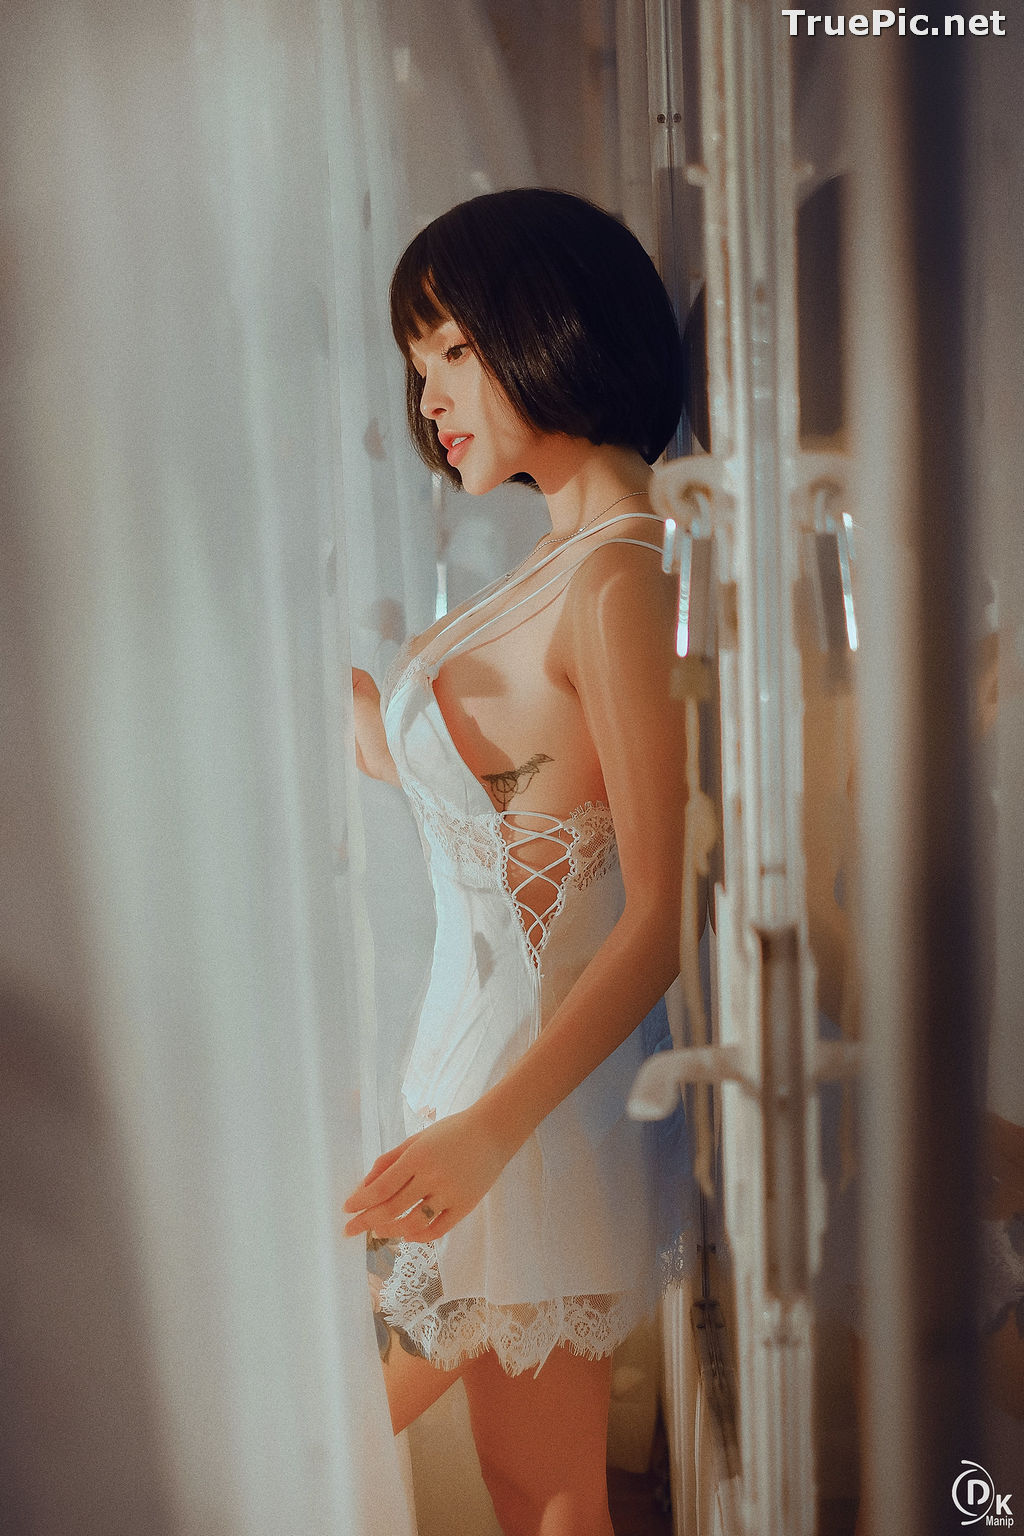 Image Vietnamese Model – Cute Short-haired Girl in White Sexy Sleepwear - TruePic.net - Picture-5